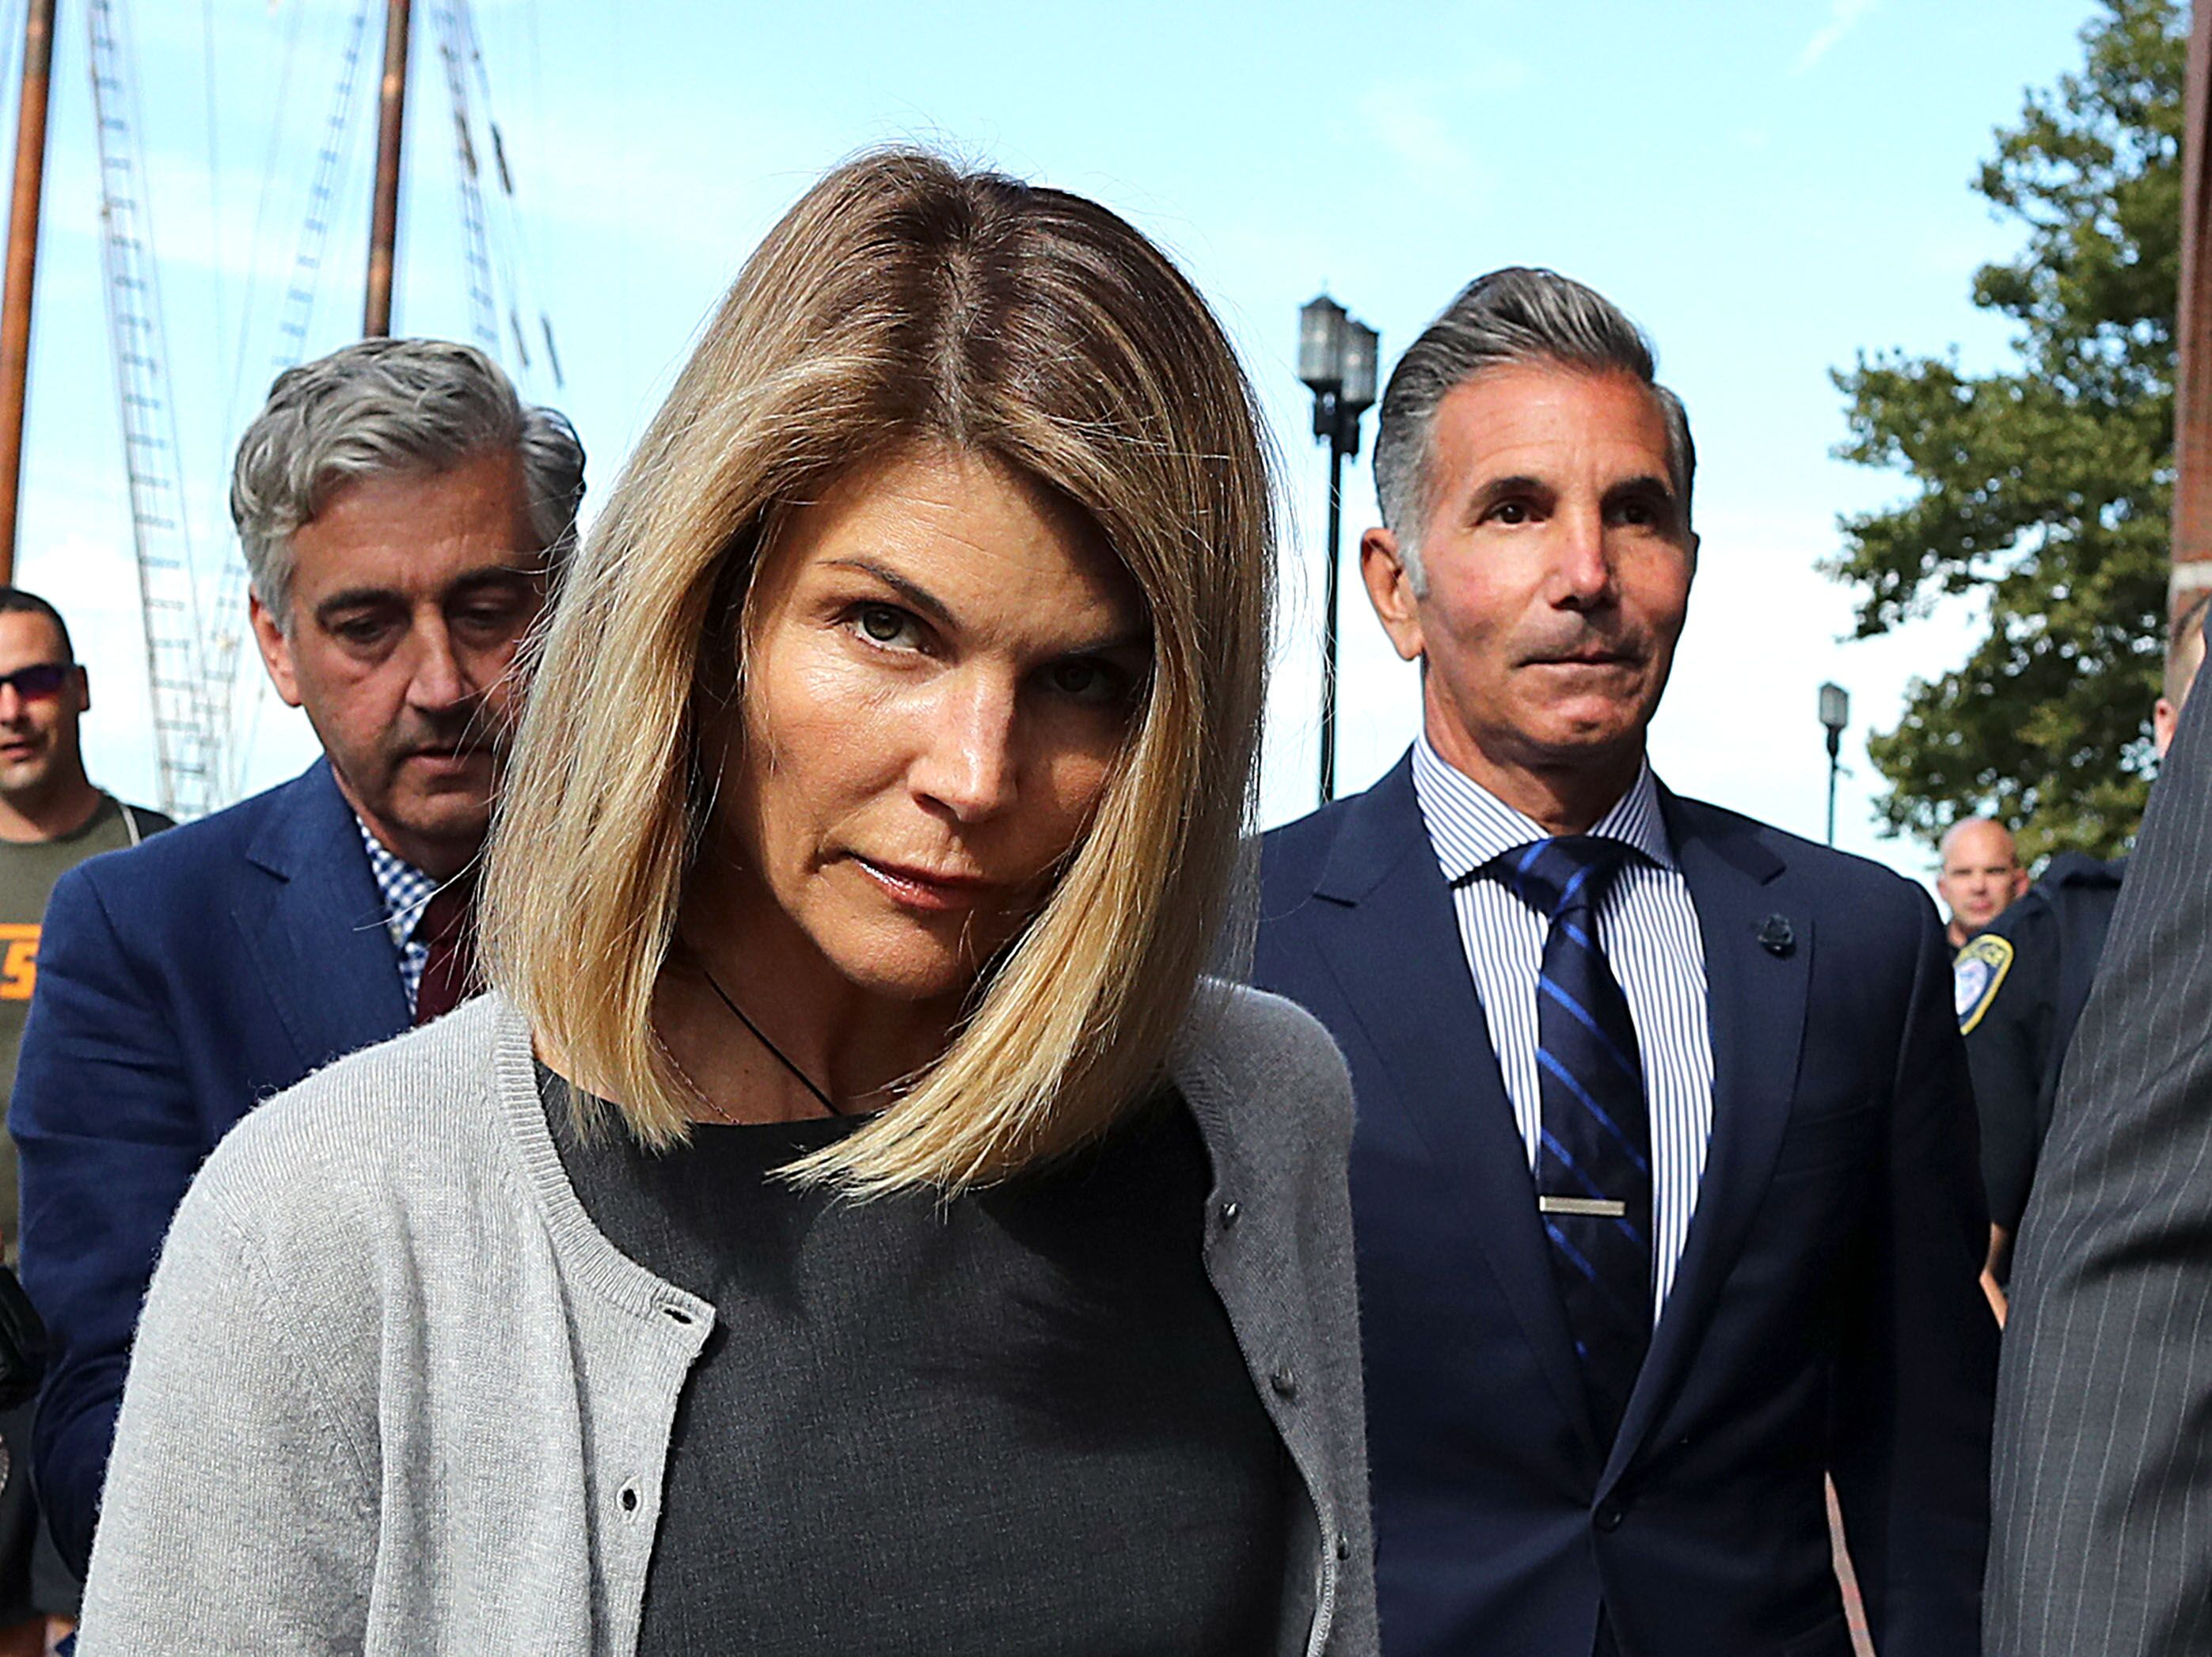 Lori Loughlin and Mossimo Giannulli leave the John Joseph Moakley United States Courthouse in Boston on August 27, 2019 | Photo: John Tlumacki/Getty Images